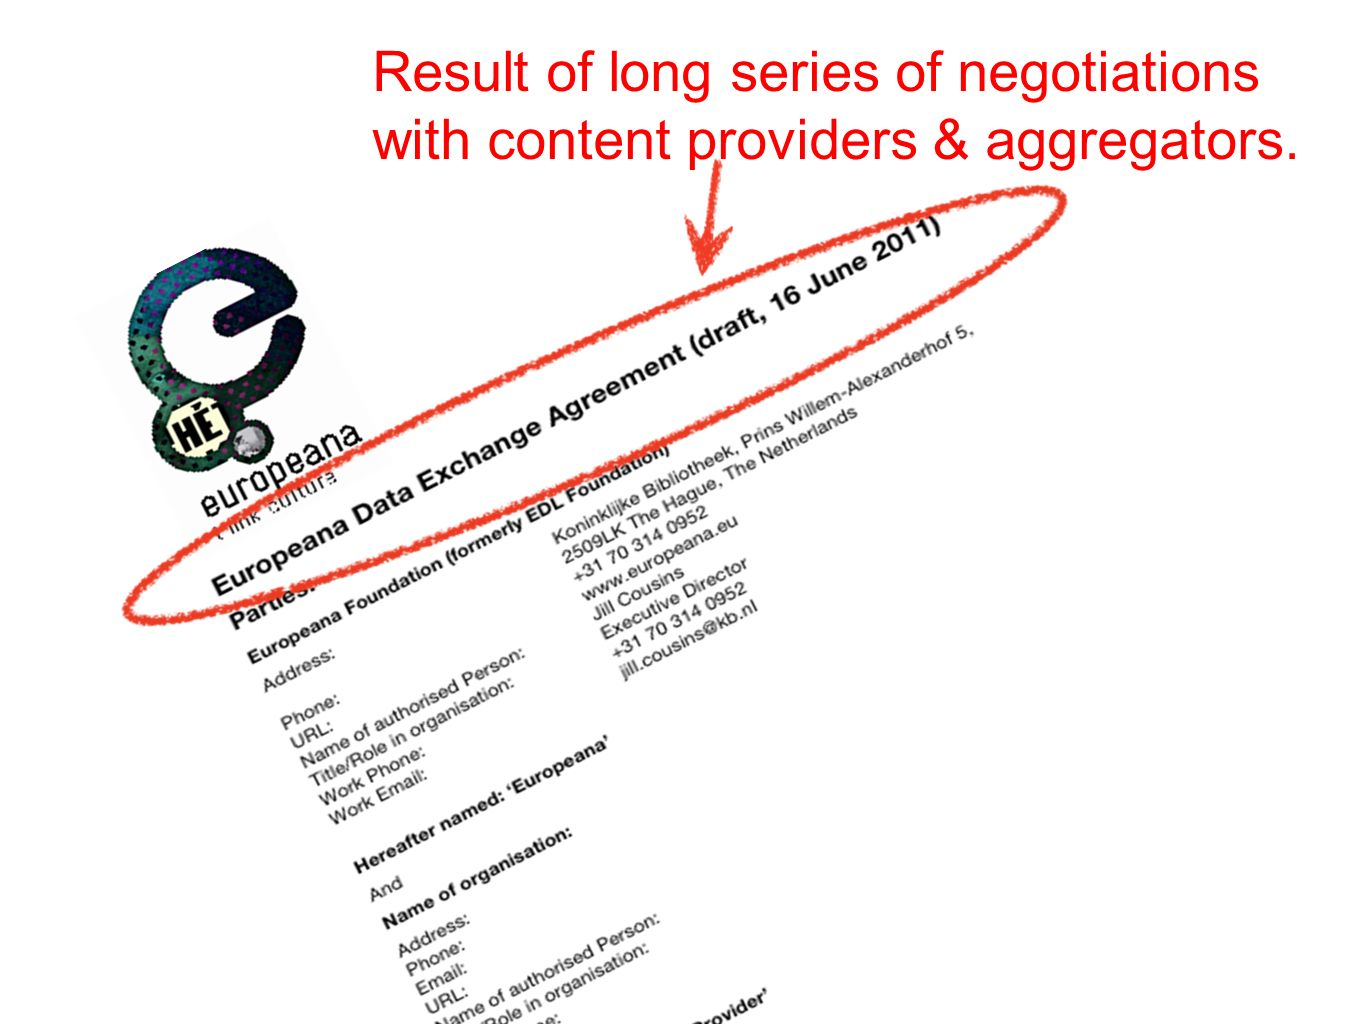 Result of long series of negotiations with content providers & aggregators.